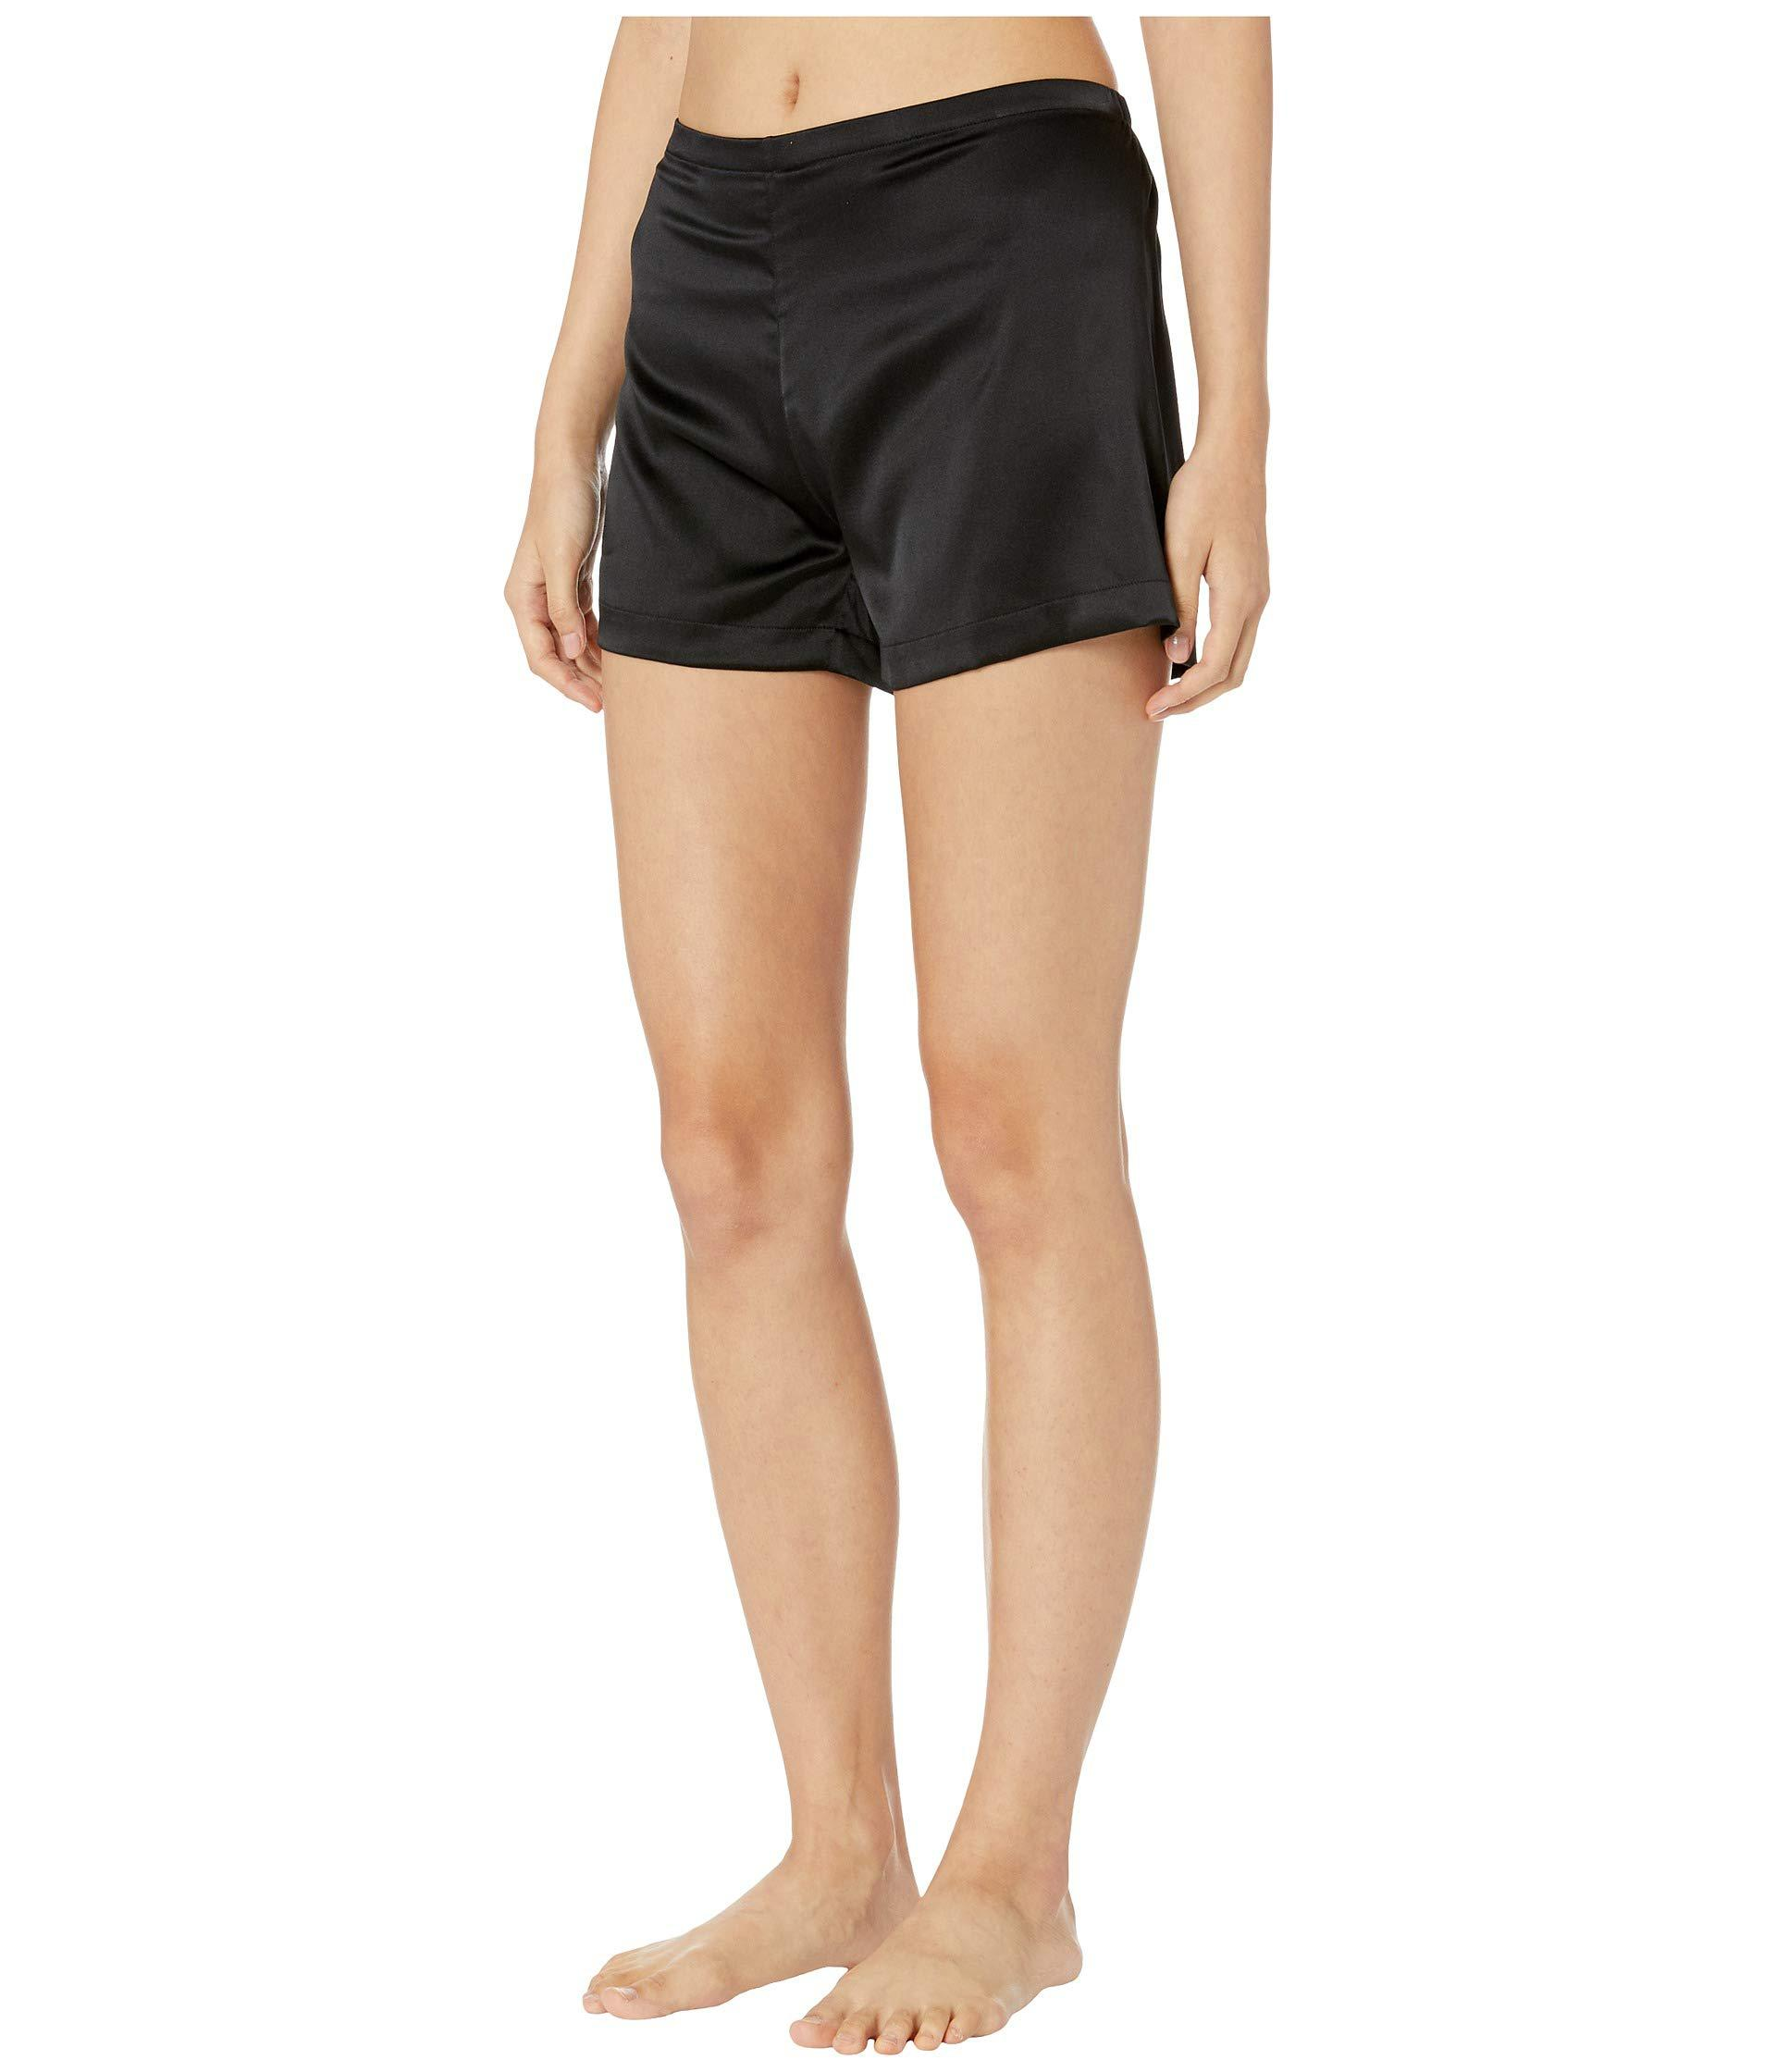 Lyst - La Perla Silk Reward Shorts (black) Women s Underwear in Black fb852b875